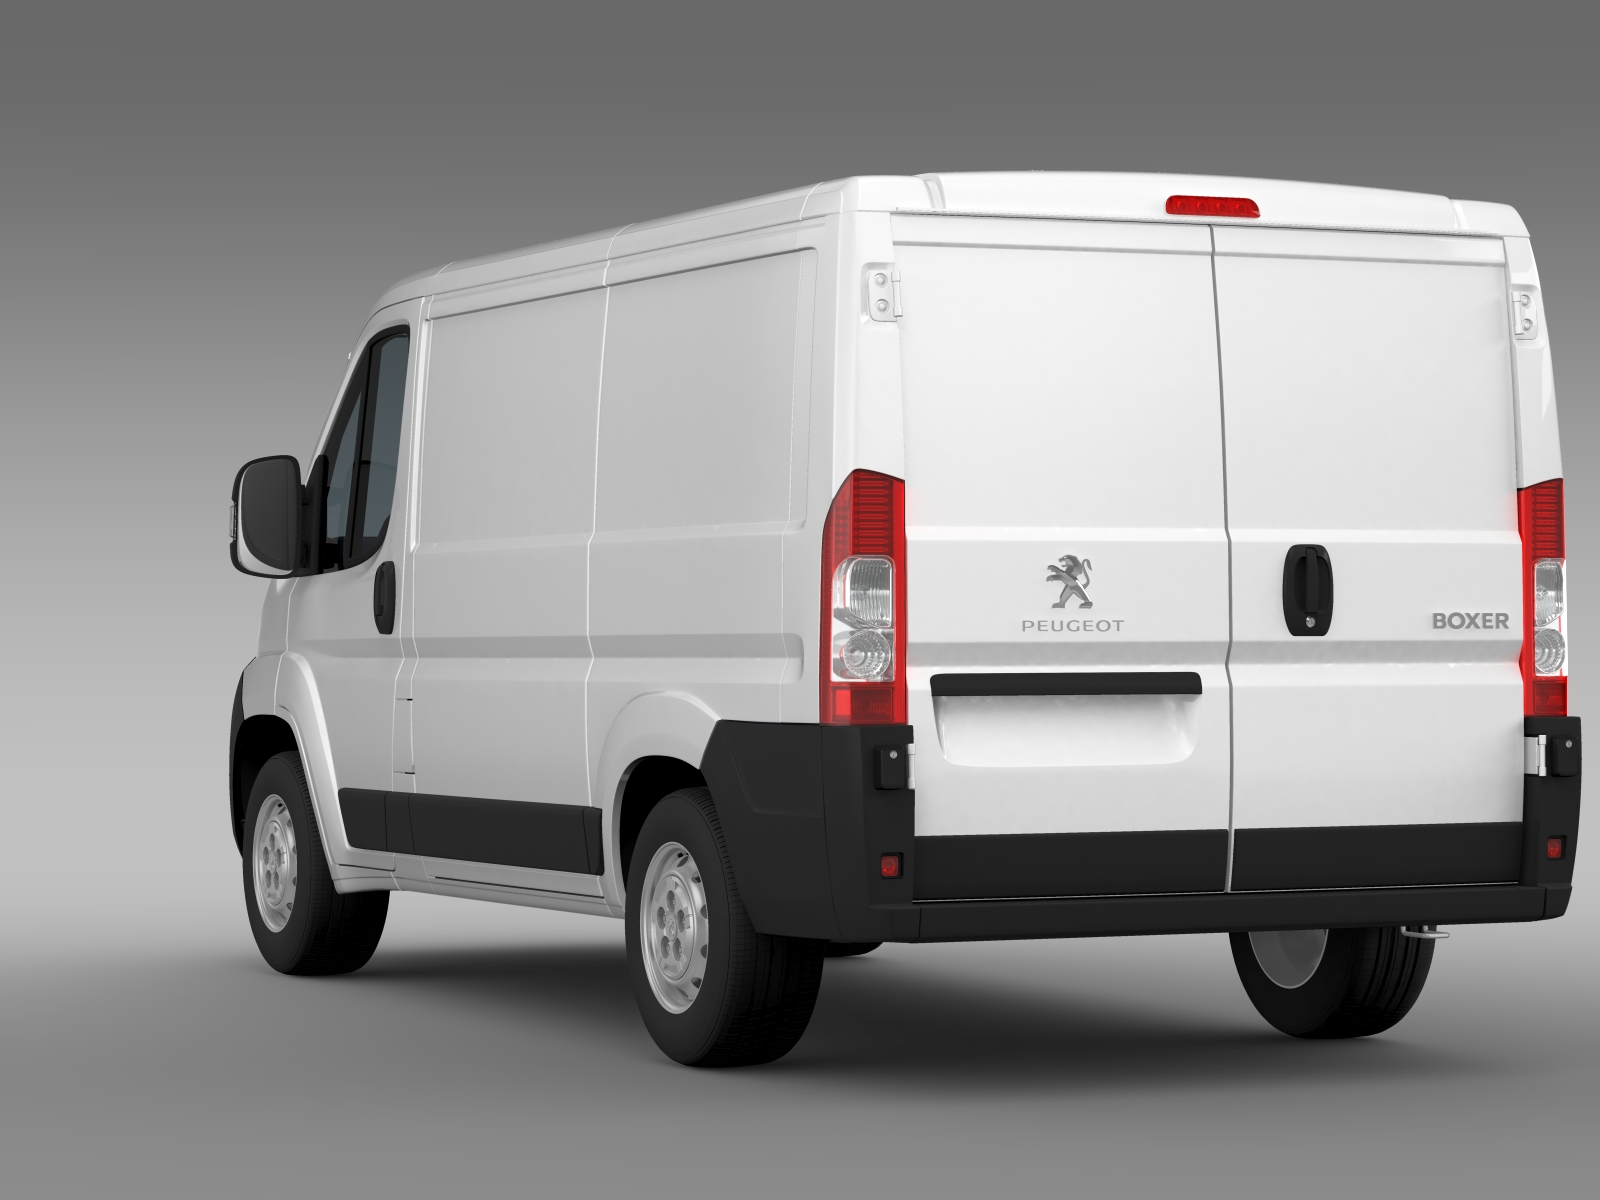 peugeot boxer van l1h1 2006 2014 3d model flatpyramid. Black Bedroom Furniture Sets. Home Design Ideas